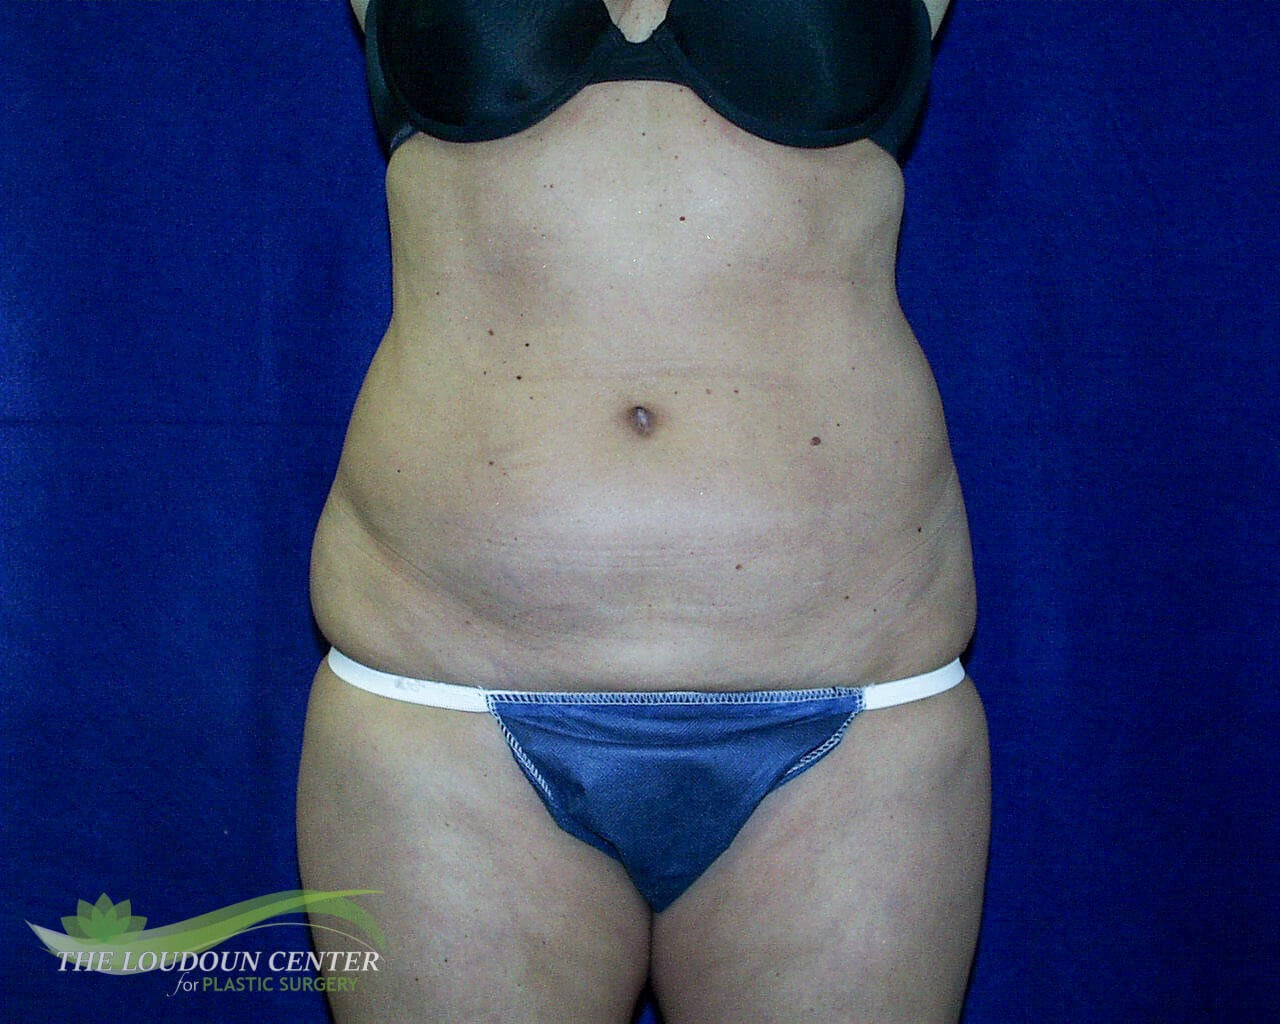 Liposuction Abdomen Before